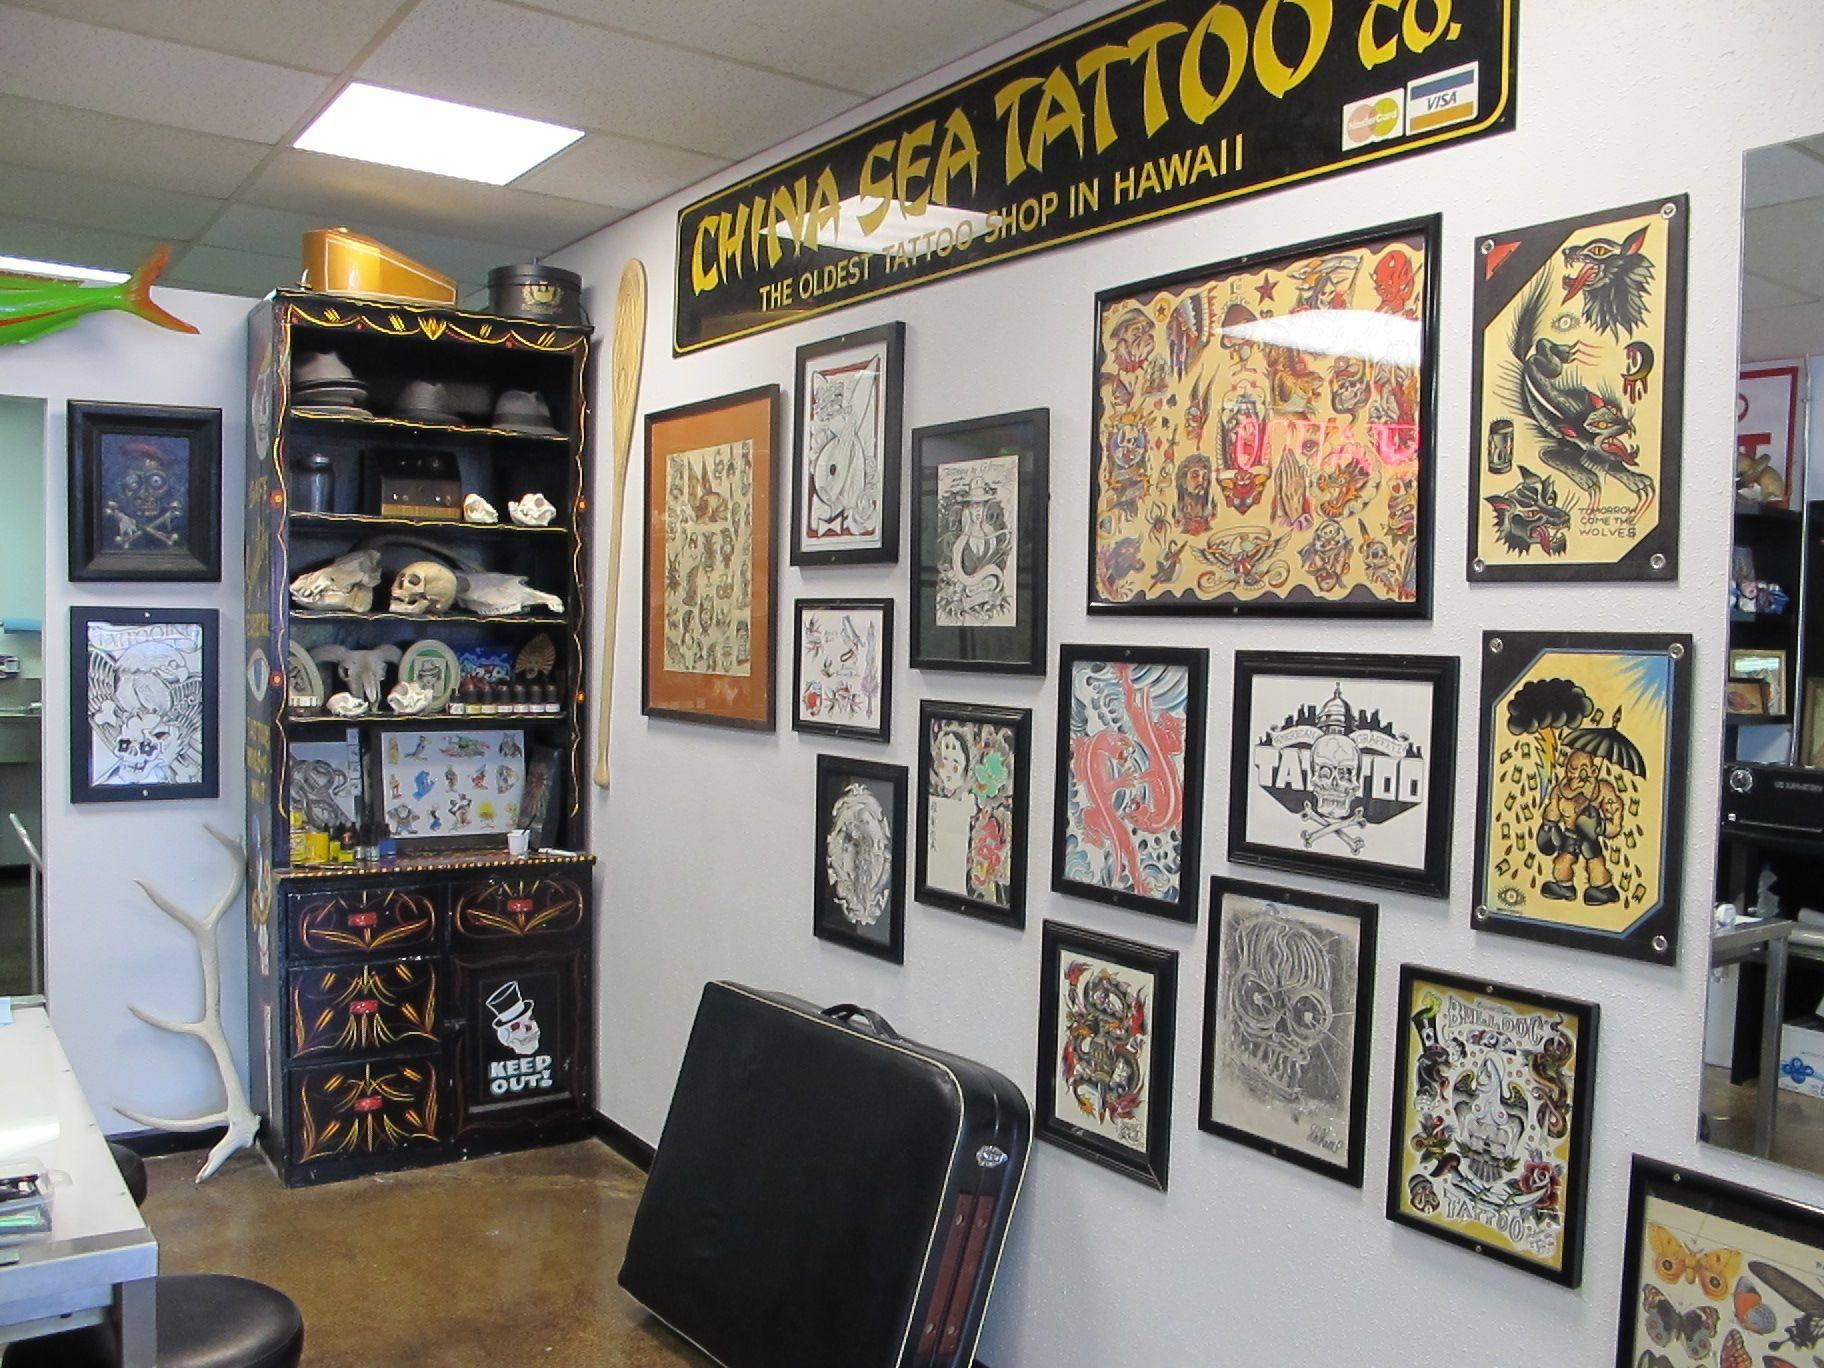 Wall Art Designs: Glamorous Tattoo Shop Wall Art From Professional Within Tattoos Wall Art (View 18 of 20)